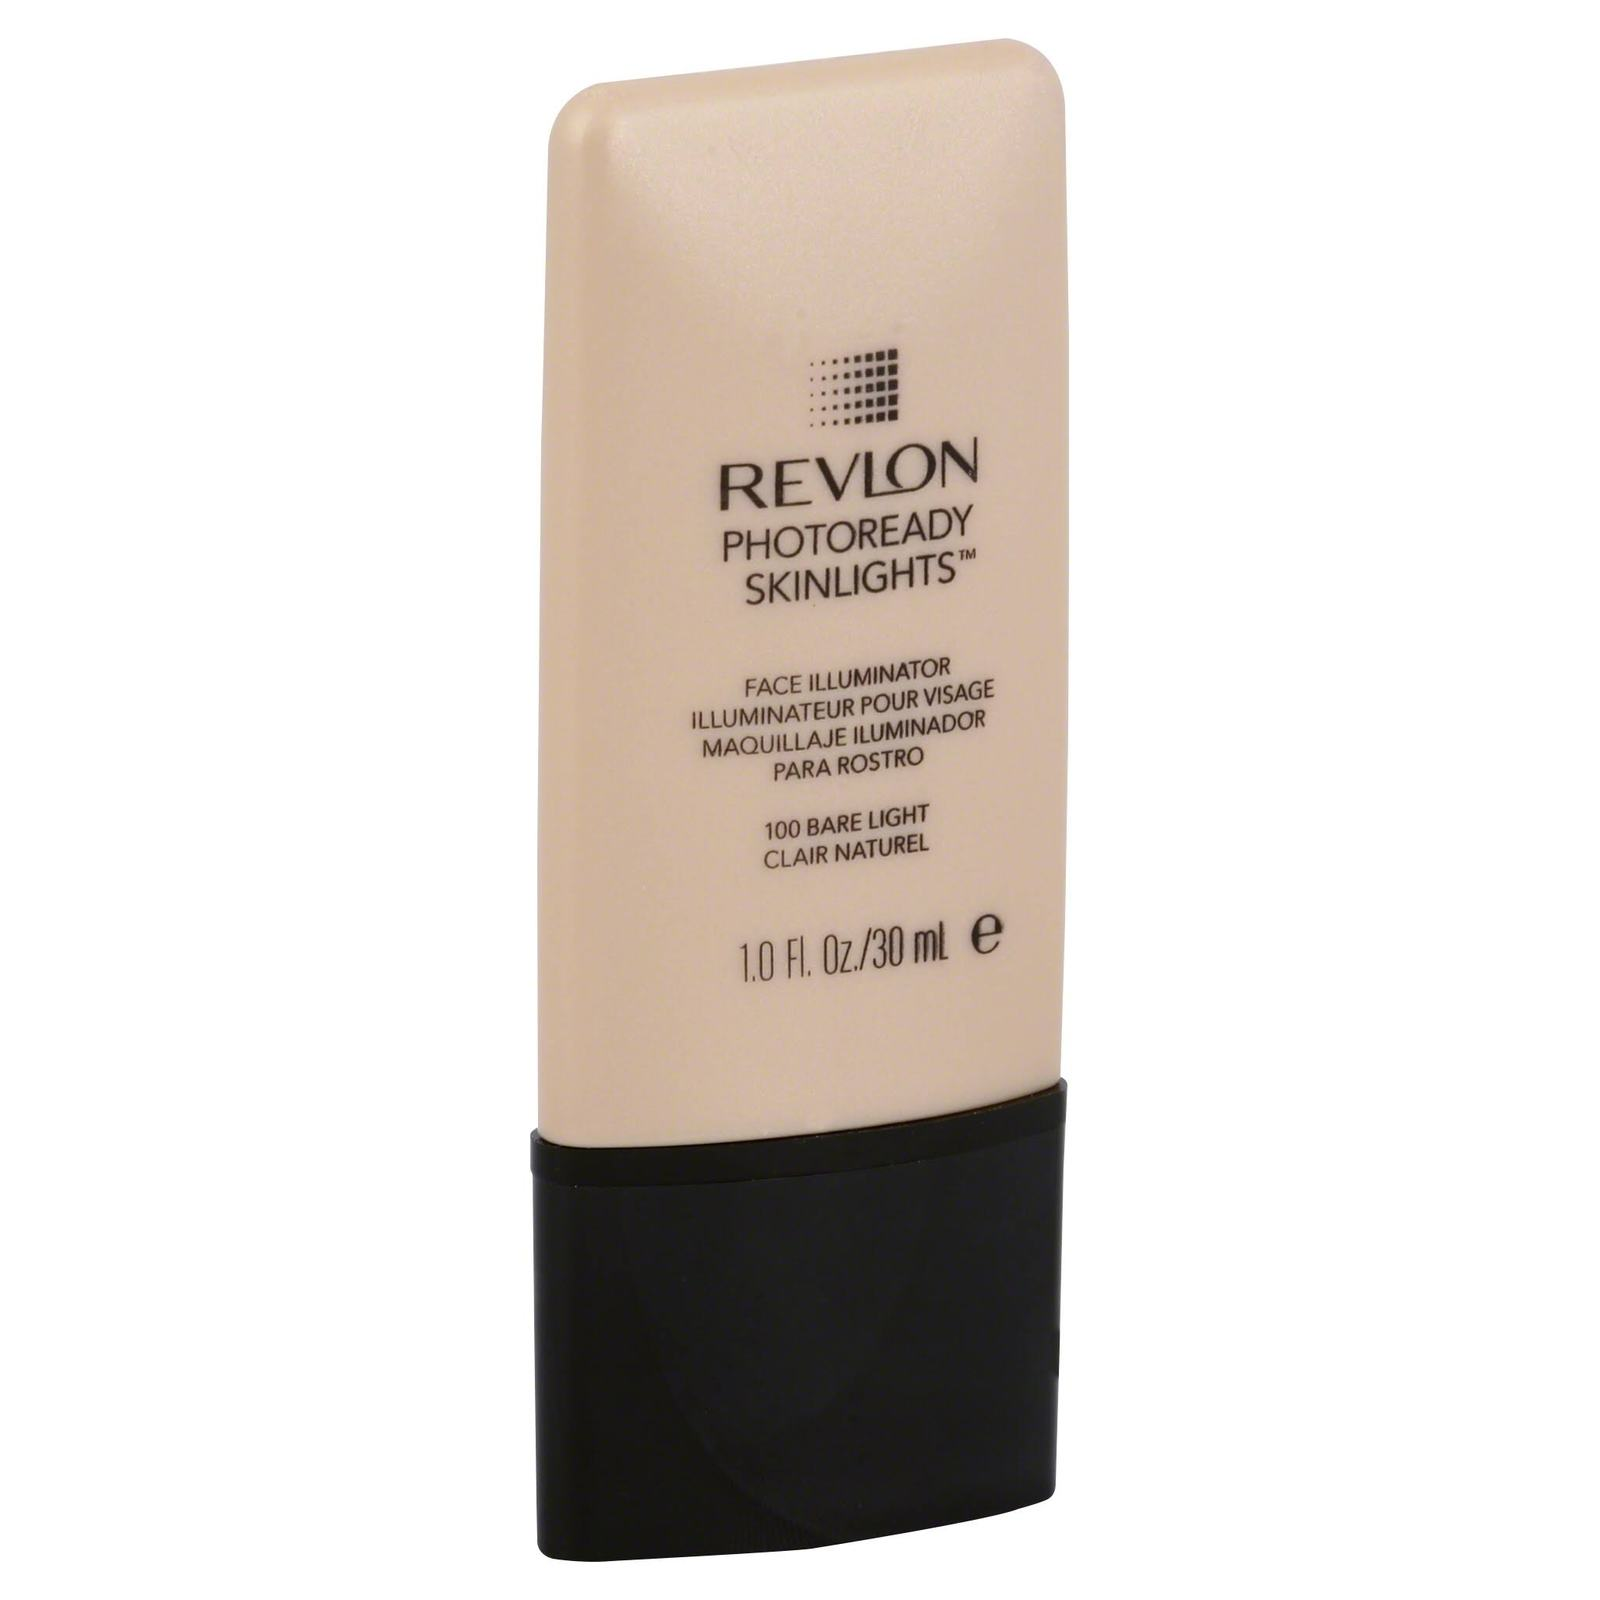 Primary image for Revlon Photoready Skinlights Face Illuminator,  Bare Light # 100, 1.0 fl. oz.